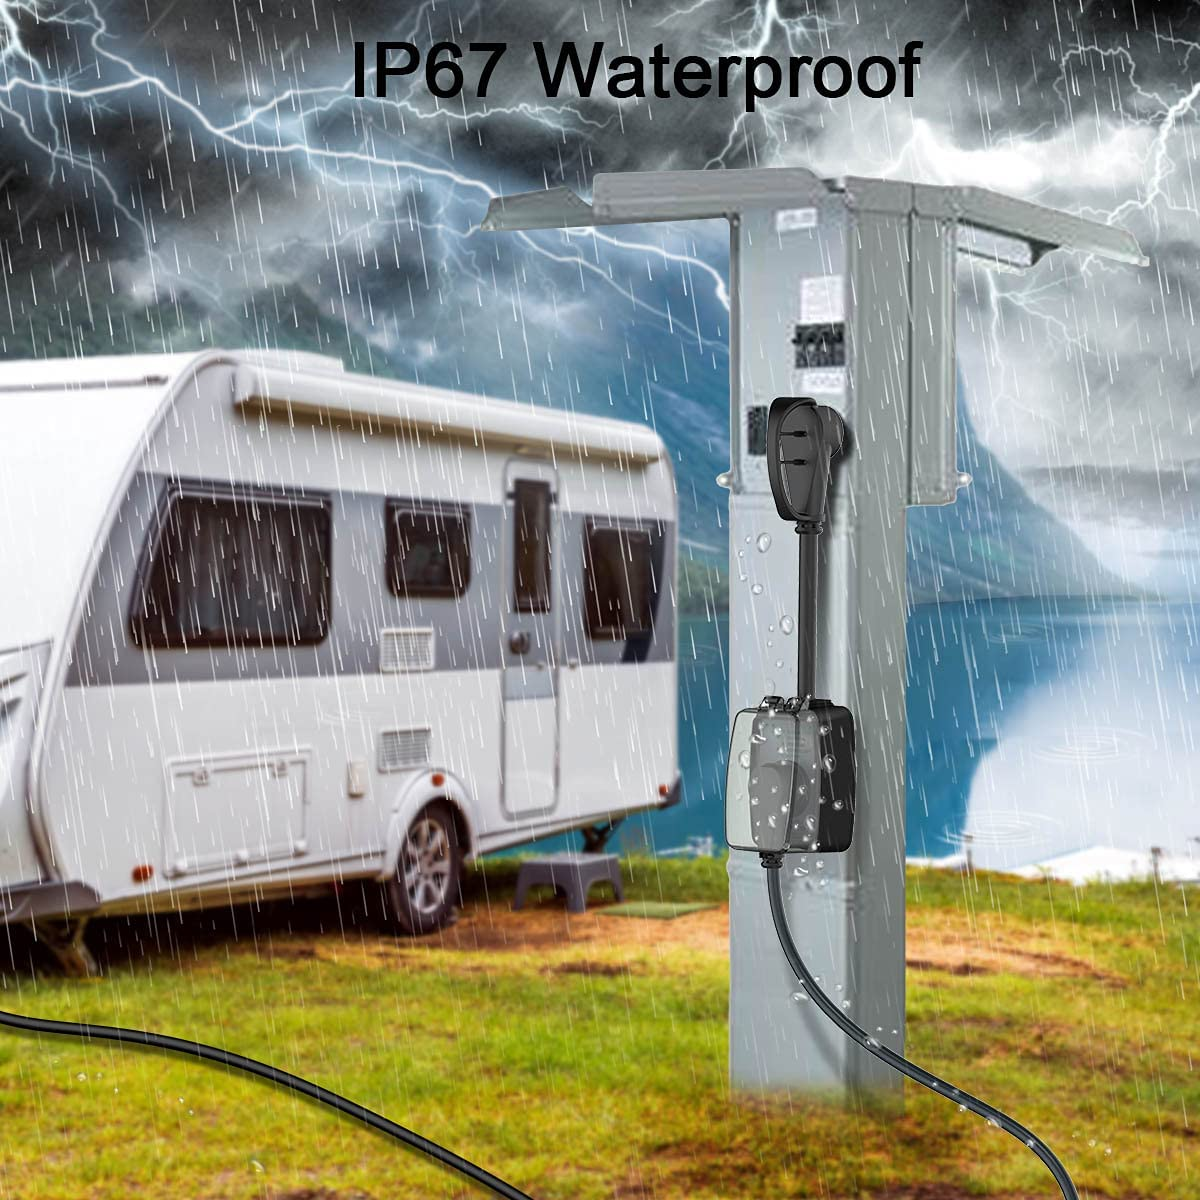 POWSAF rv Surge Protector 30 amp with Waterproof Cover, rv Power Defender Voltage Protector/Monitor with Surge Protection(4100 Joules), Designed with Easy to Use Handles : Automotive